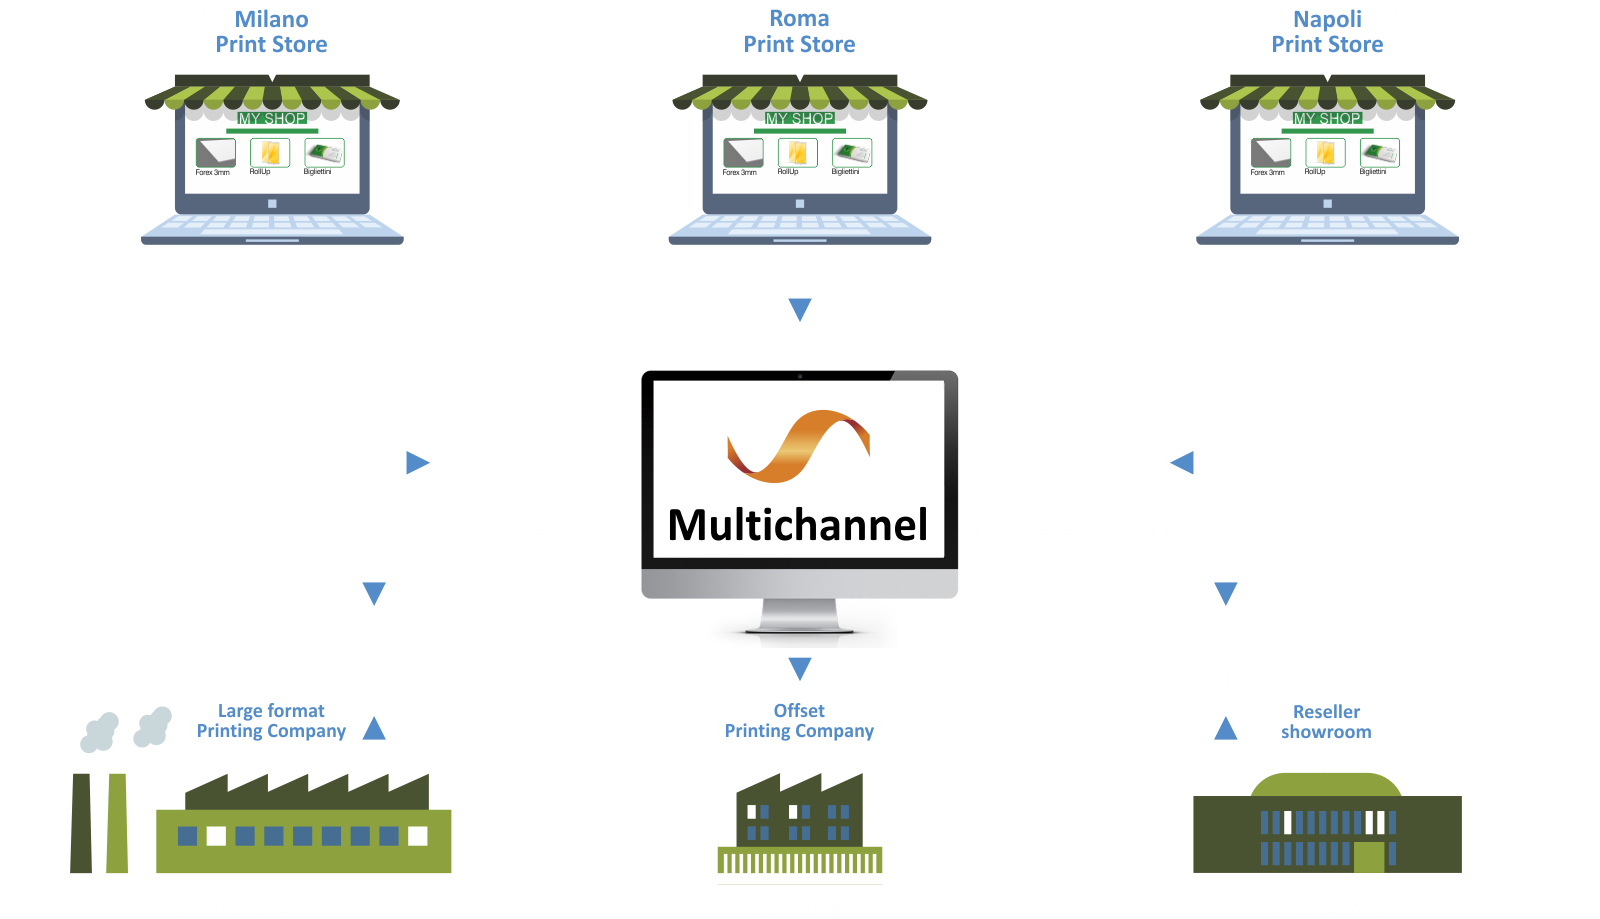 How multichannel works